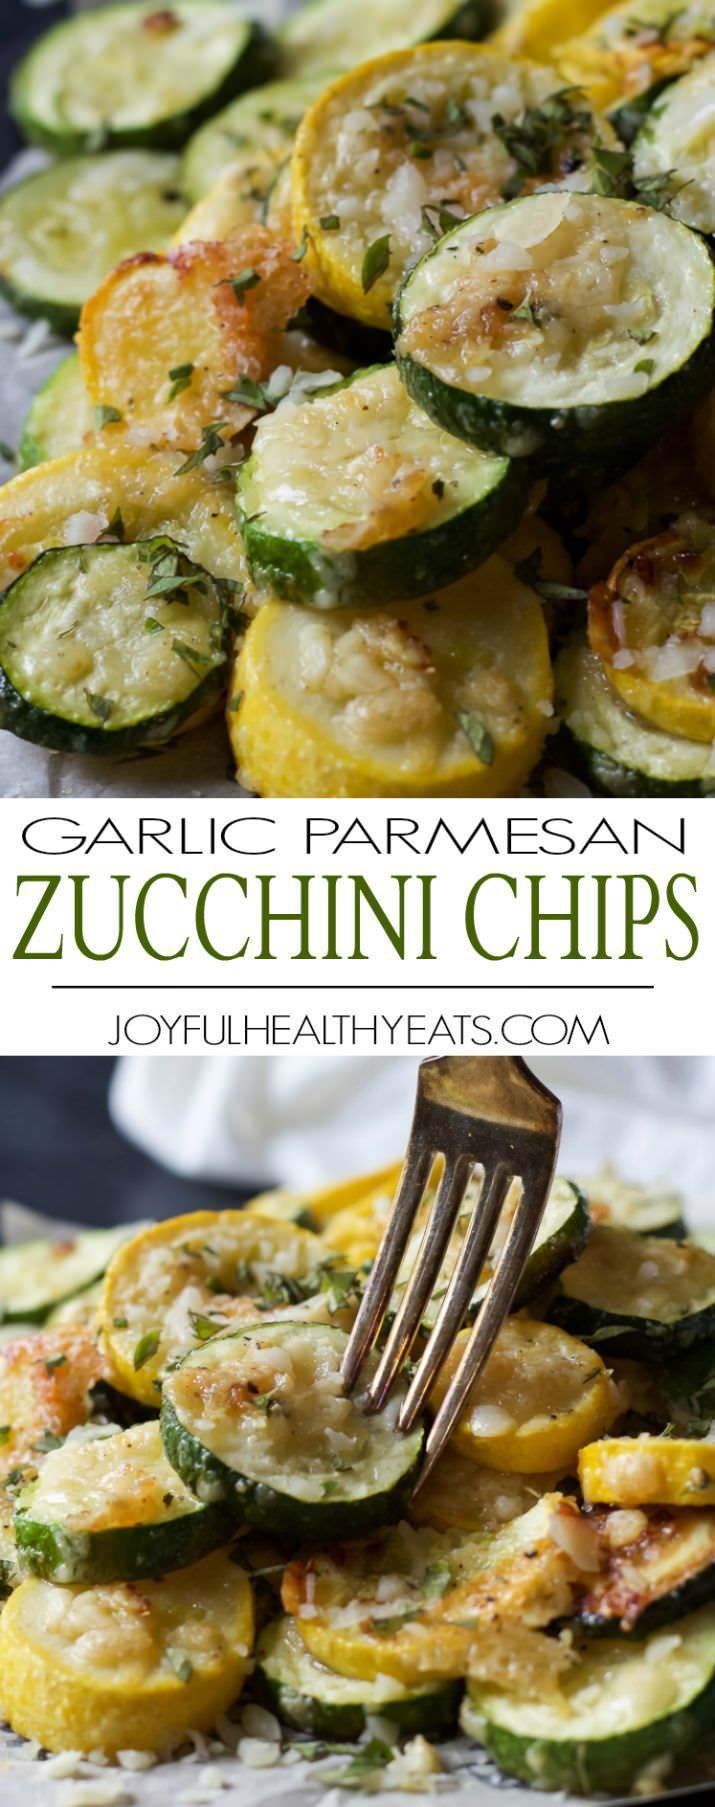 Crispy Parmesan Garlic Zucchini Chips you won't be able to stop popping these in your mouth! Veggies never tasted so good!! Best way to use up extra zucchini! | joyfulhealthyeats.com